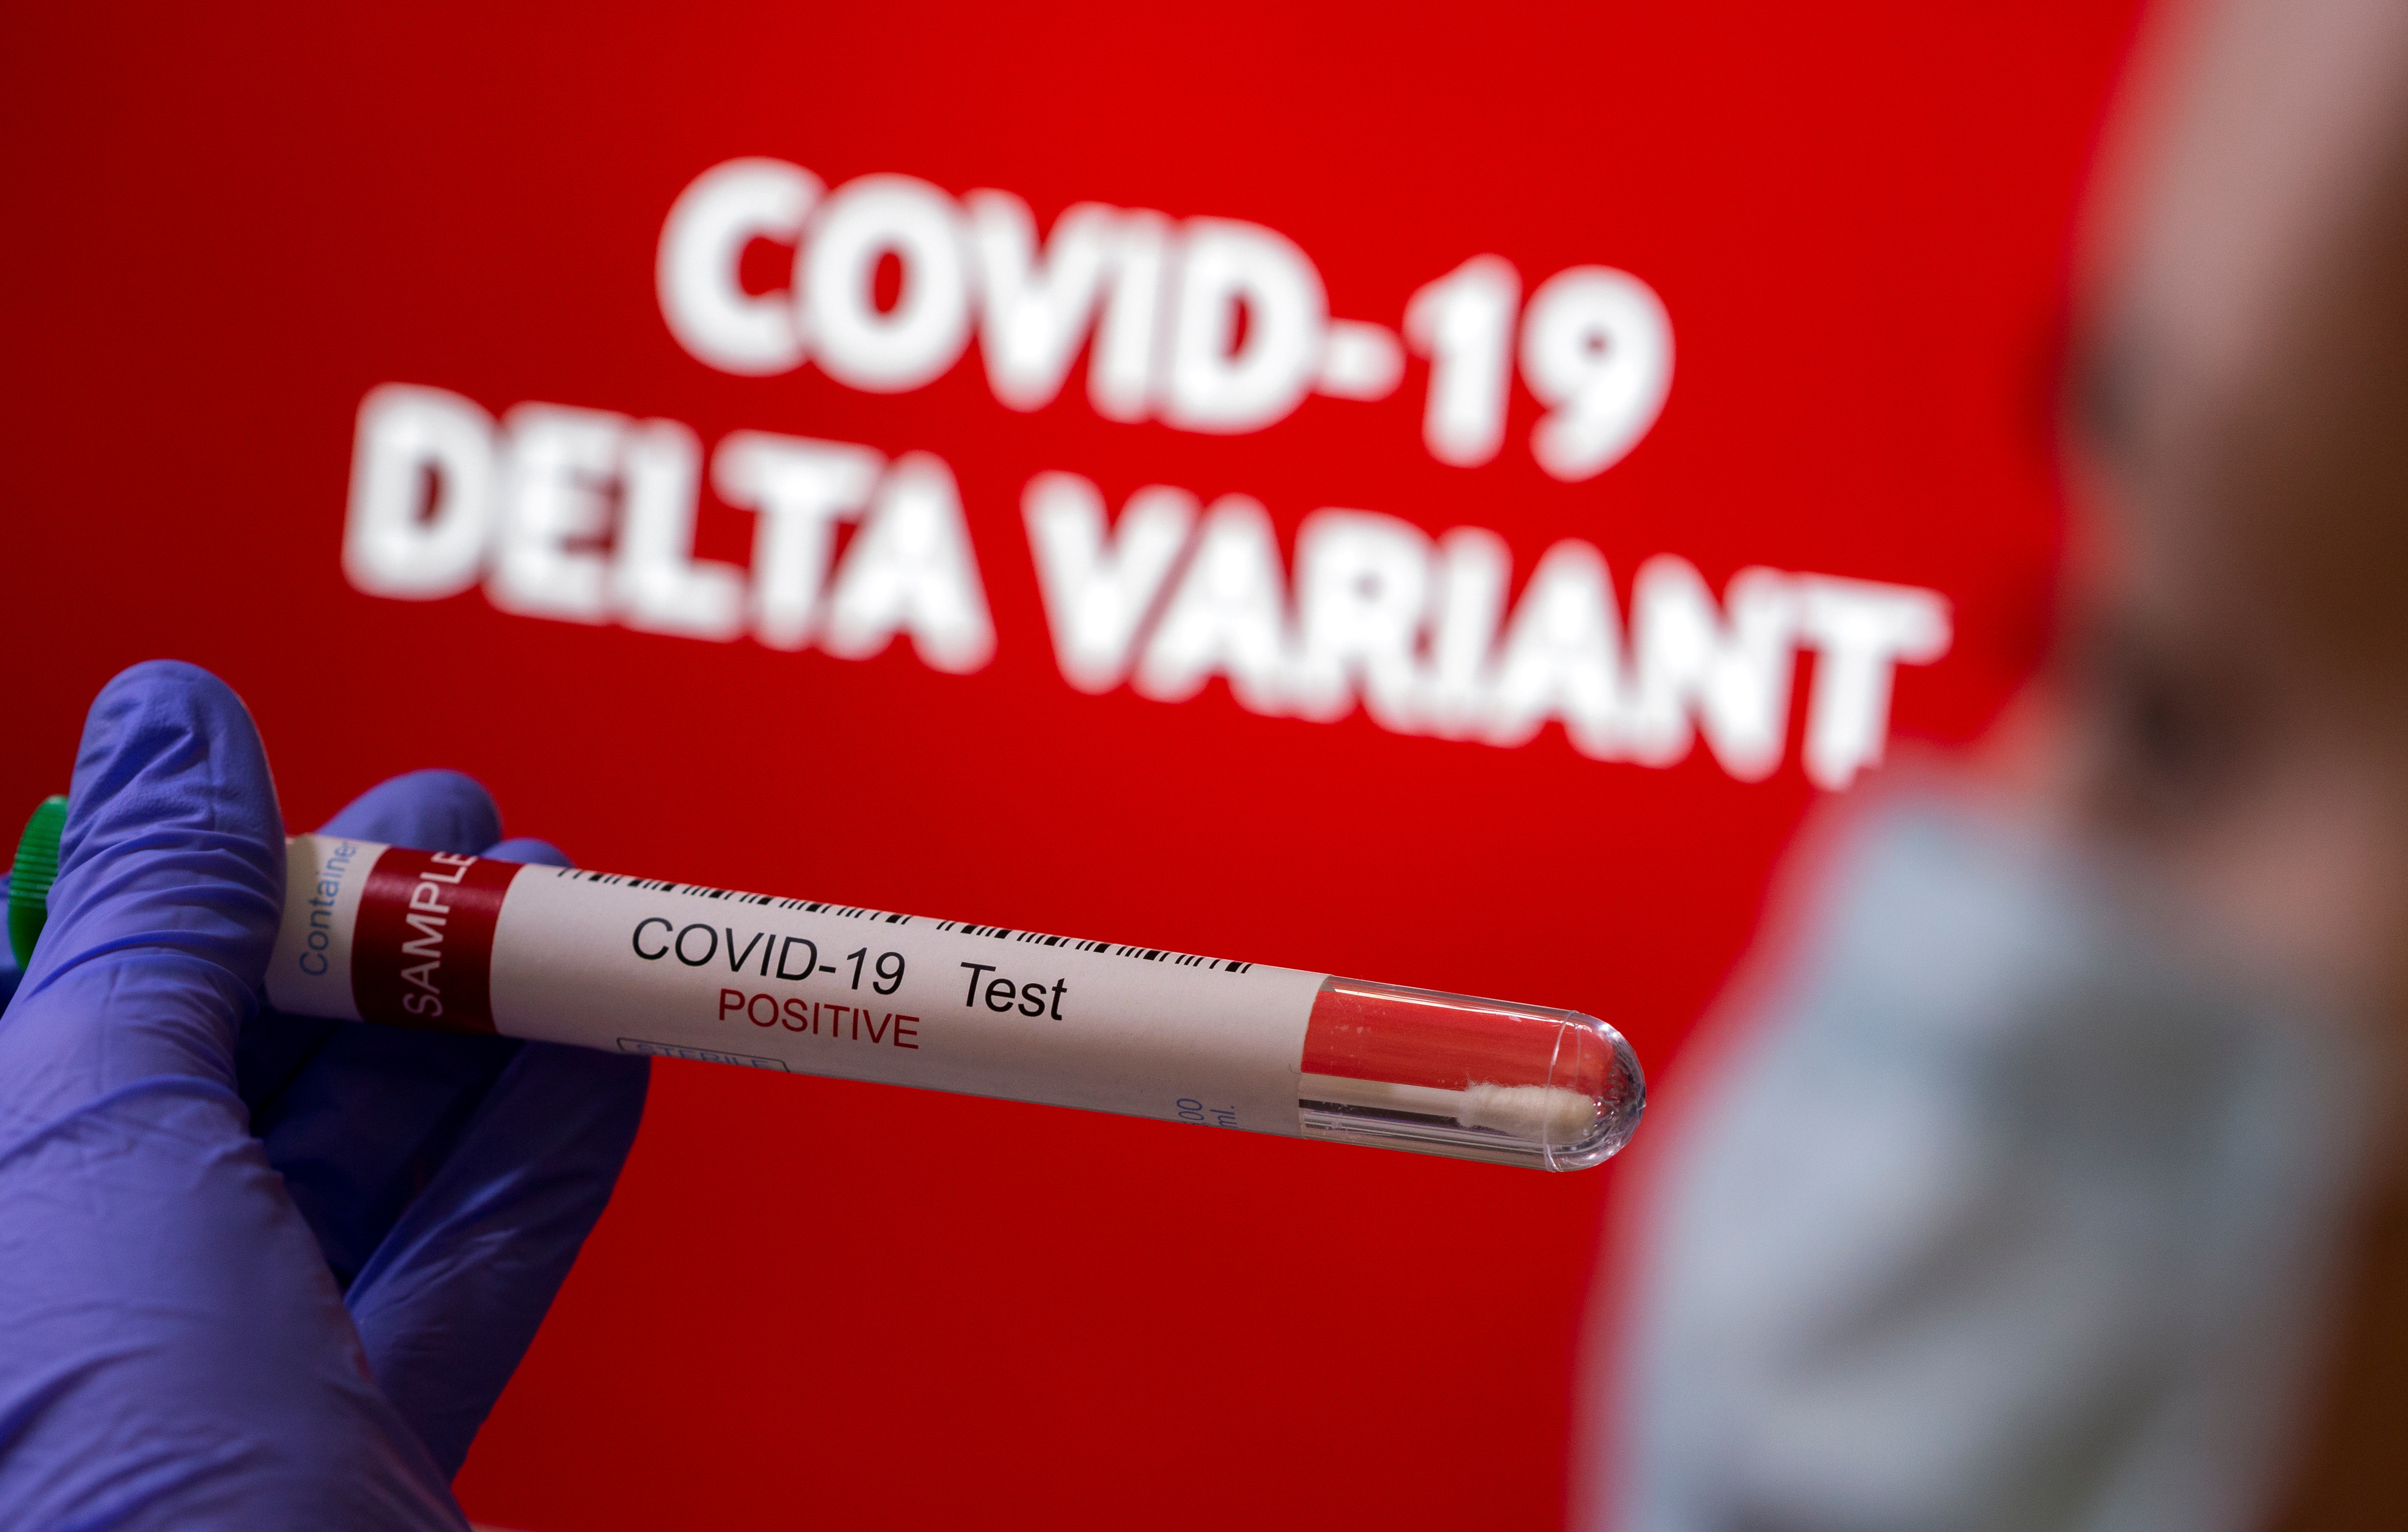 A person holds a test tube labelled 'COVID-19 Test Positive' in front of displayed words 'COVID-19 Delta variant' in this illustration taken August 31, 2021. REUTERS/Dado Ruvic/Illustration